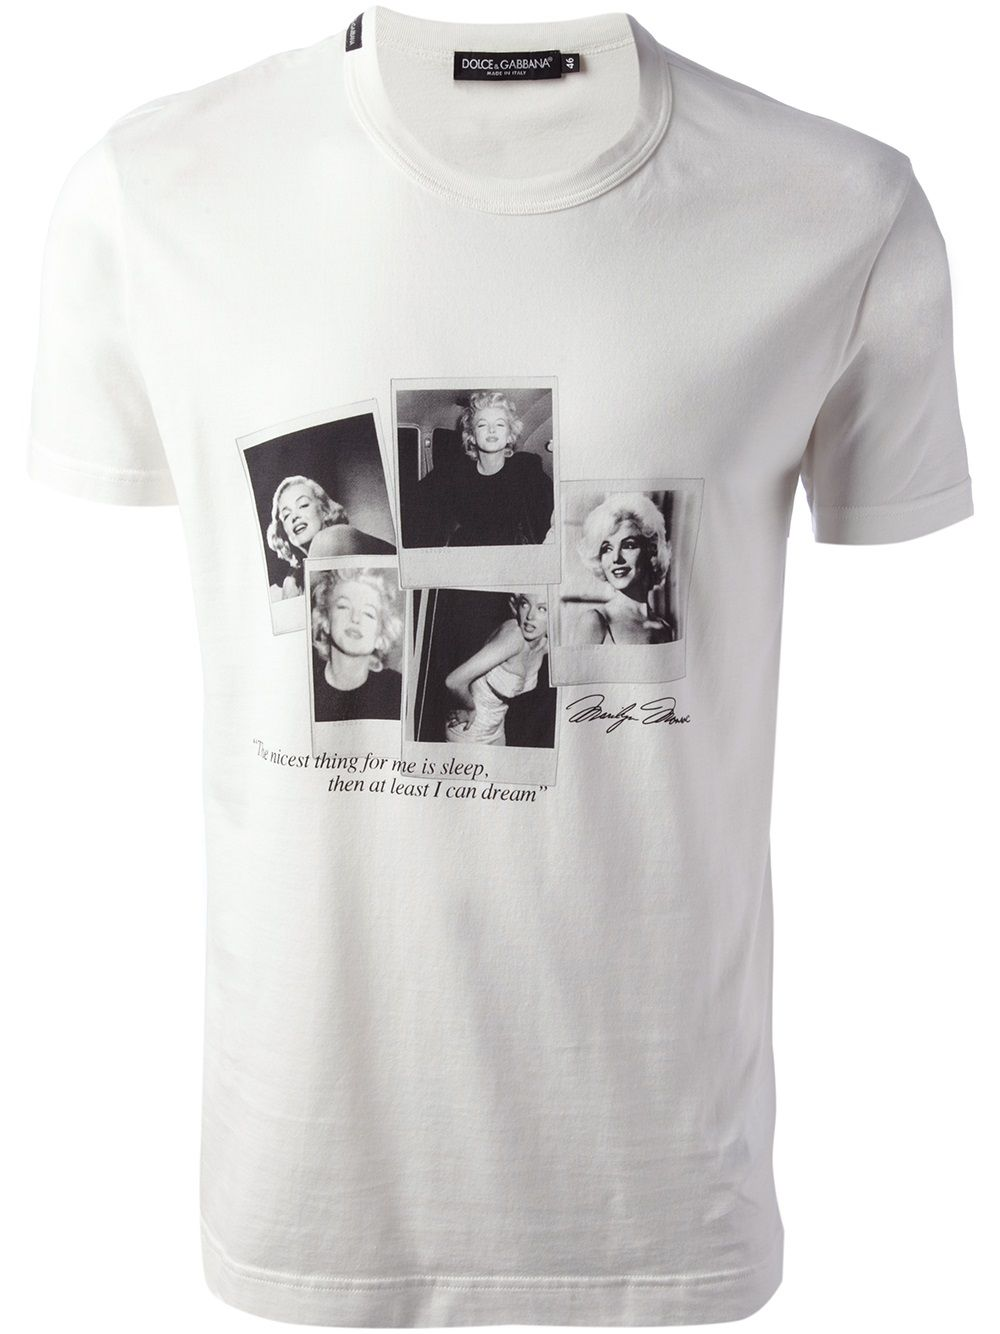 3c1615a4 Dolce & gabbana Marilyn Monroe T-shirt in White for Men | Lyst ...